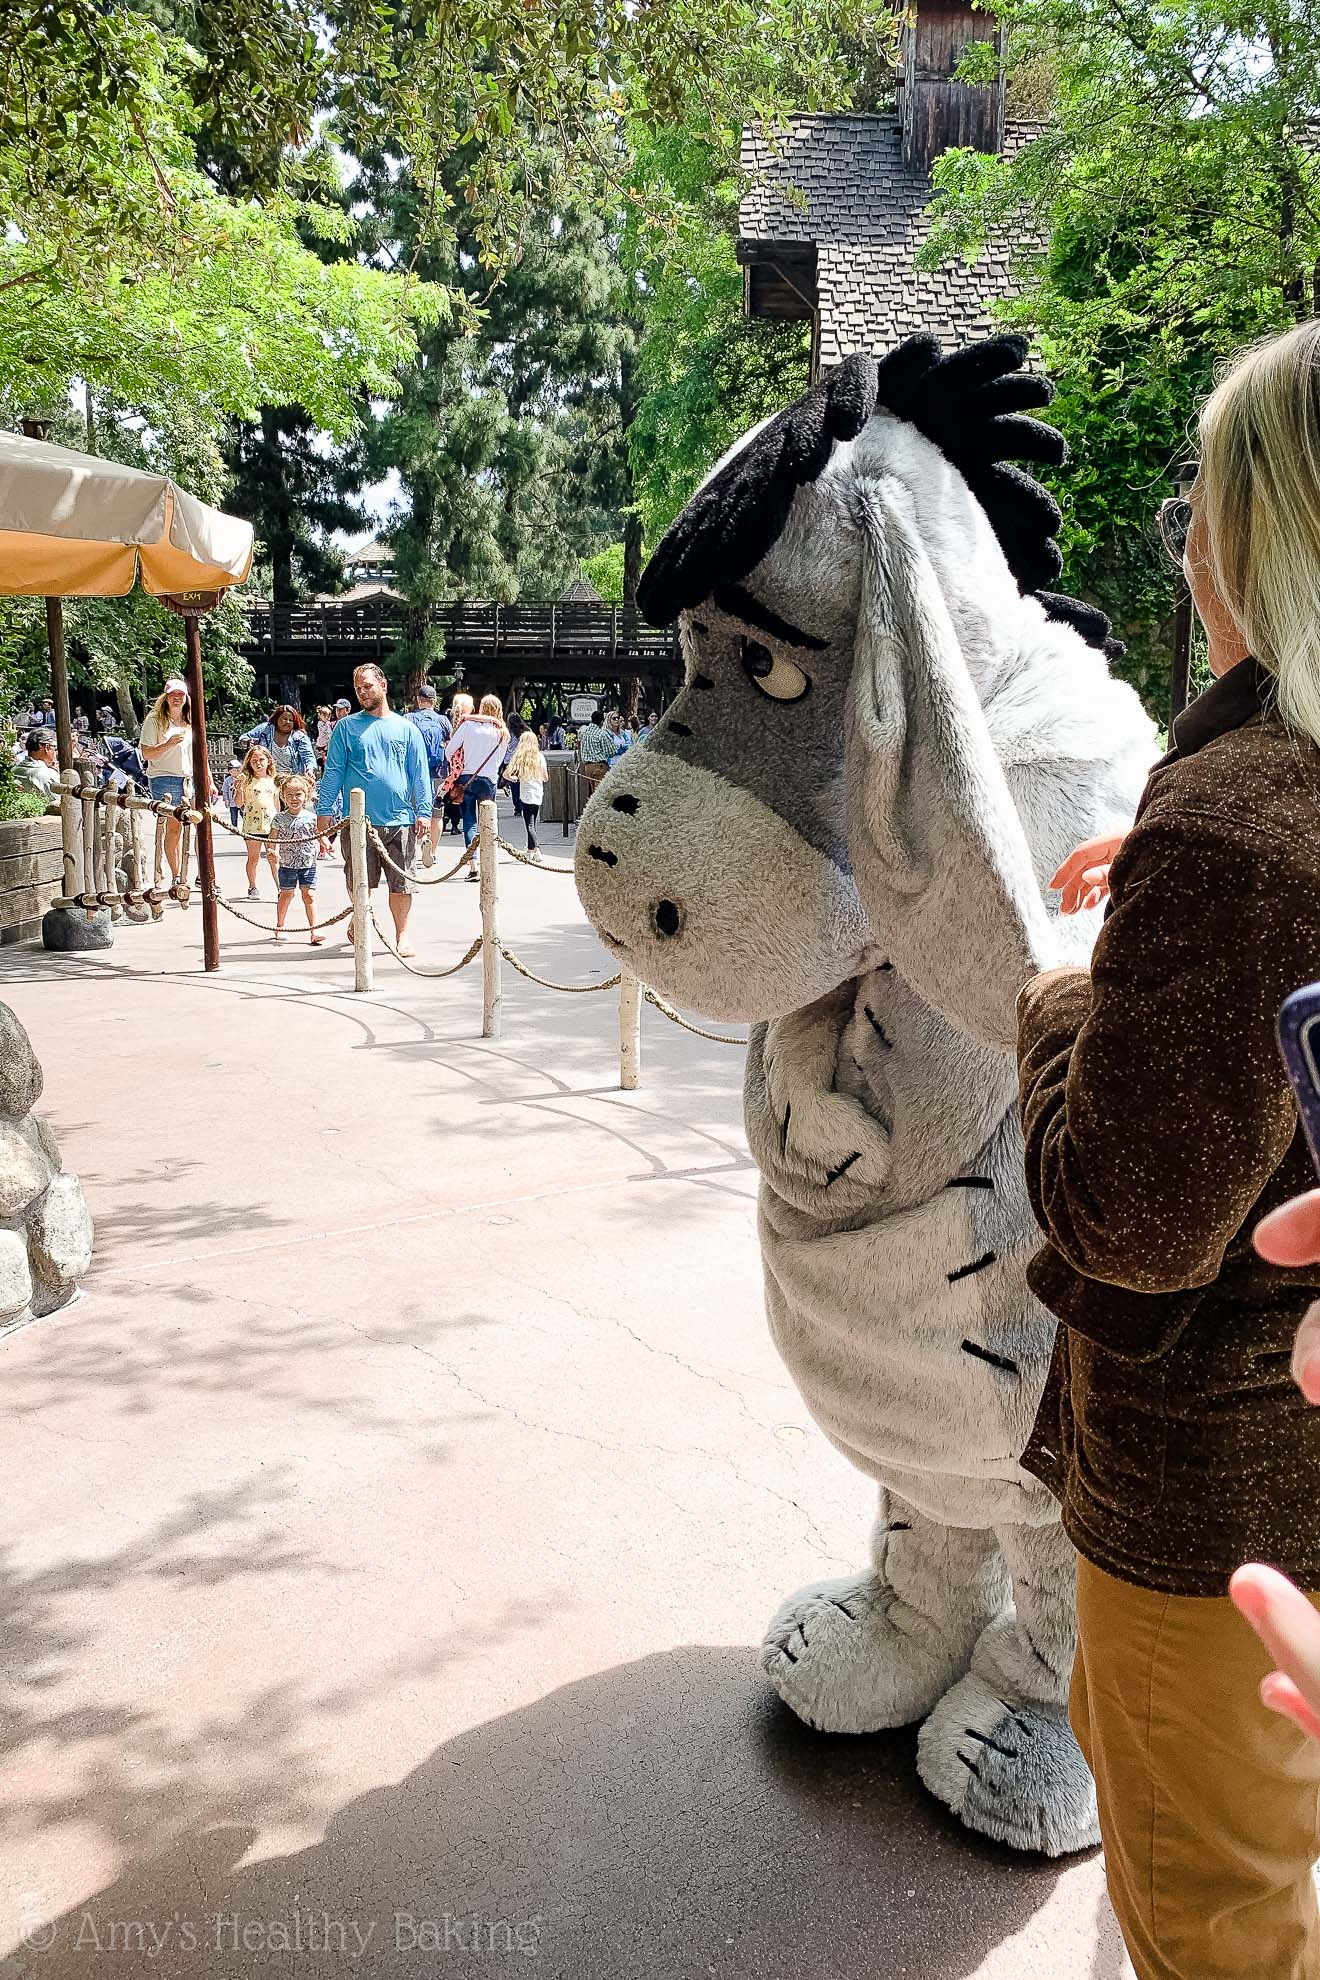 Meeting Eeyore in Pooh's Corner in Disneyland - Anaheim, California